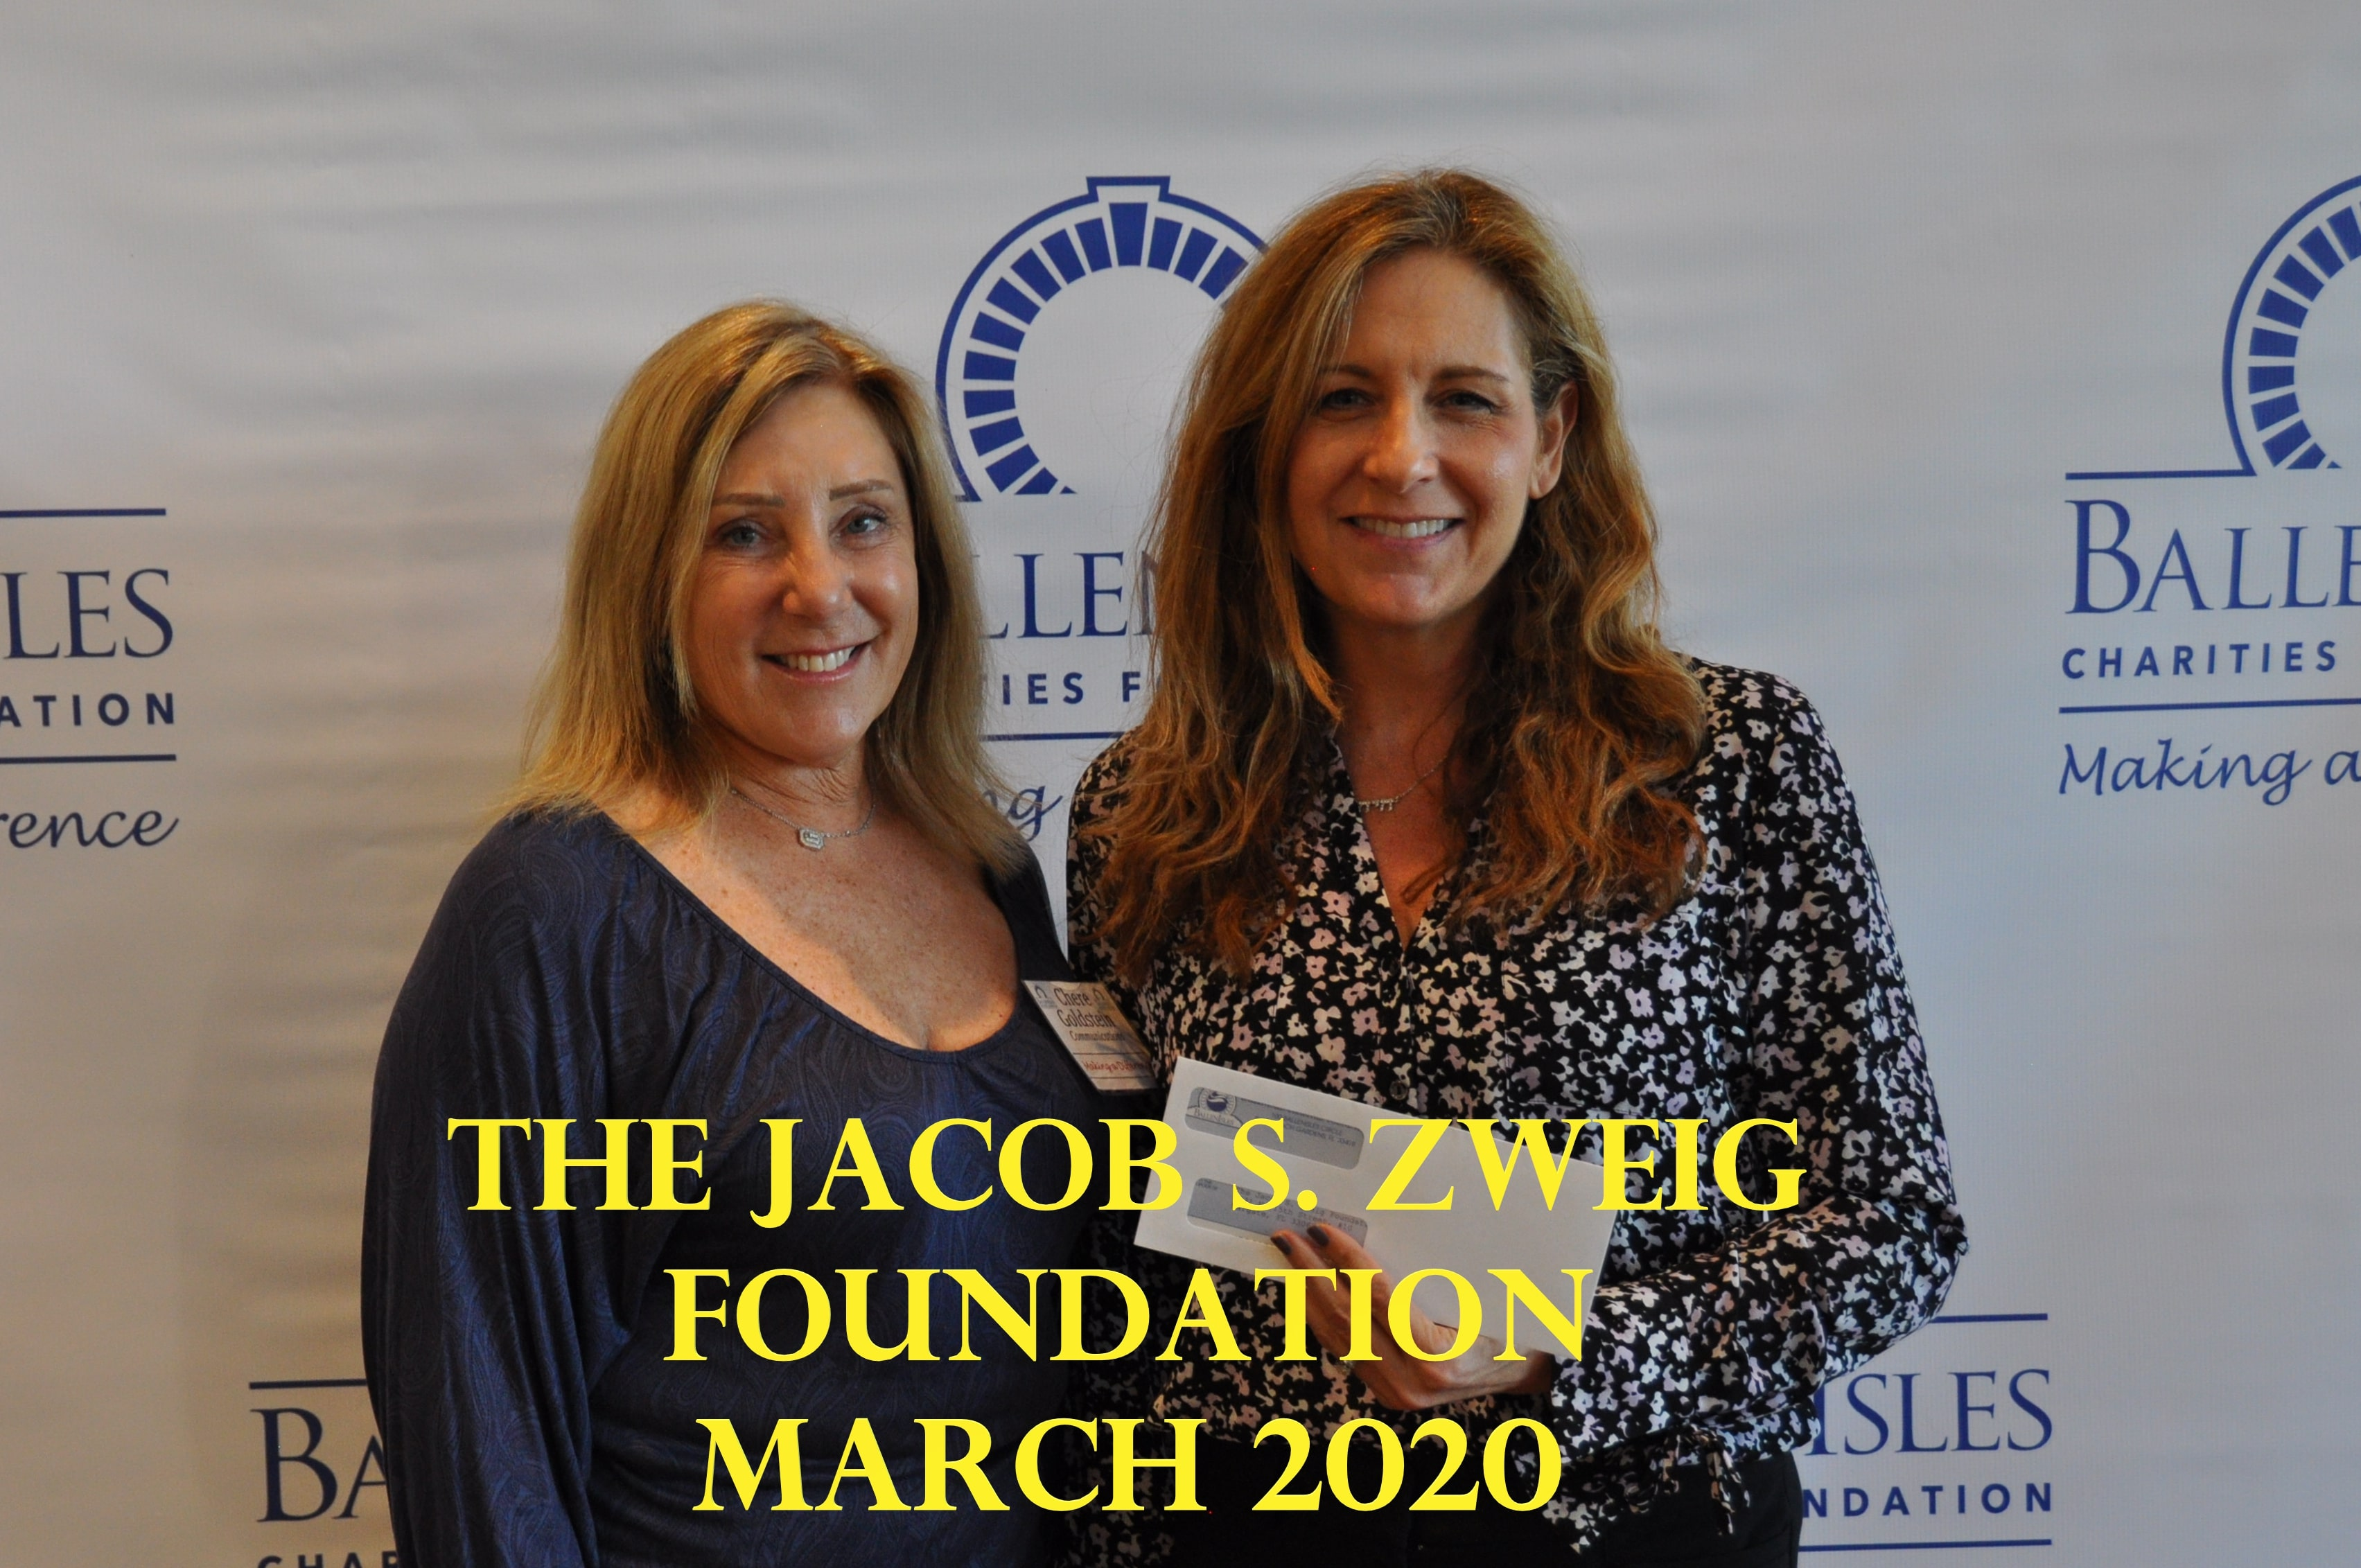 The-JACOB-S-ZWEIG-FOUNDATION-March-2020